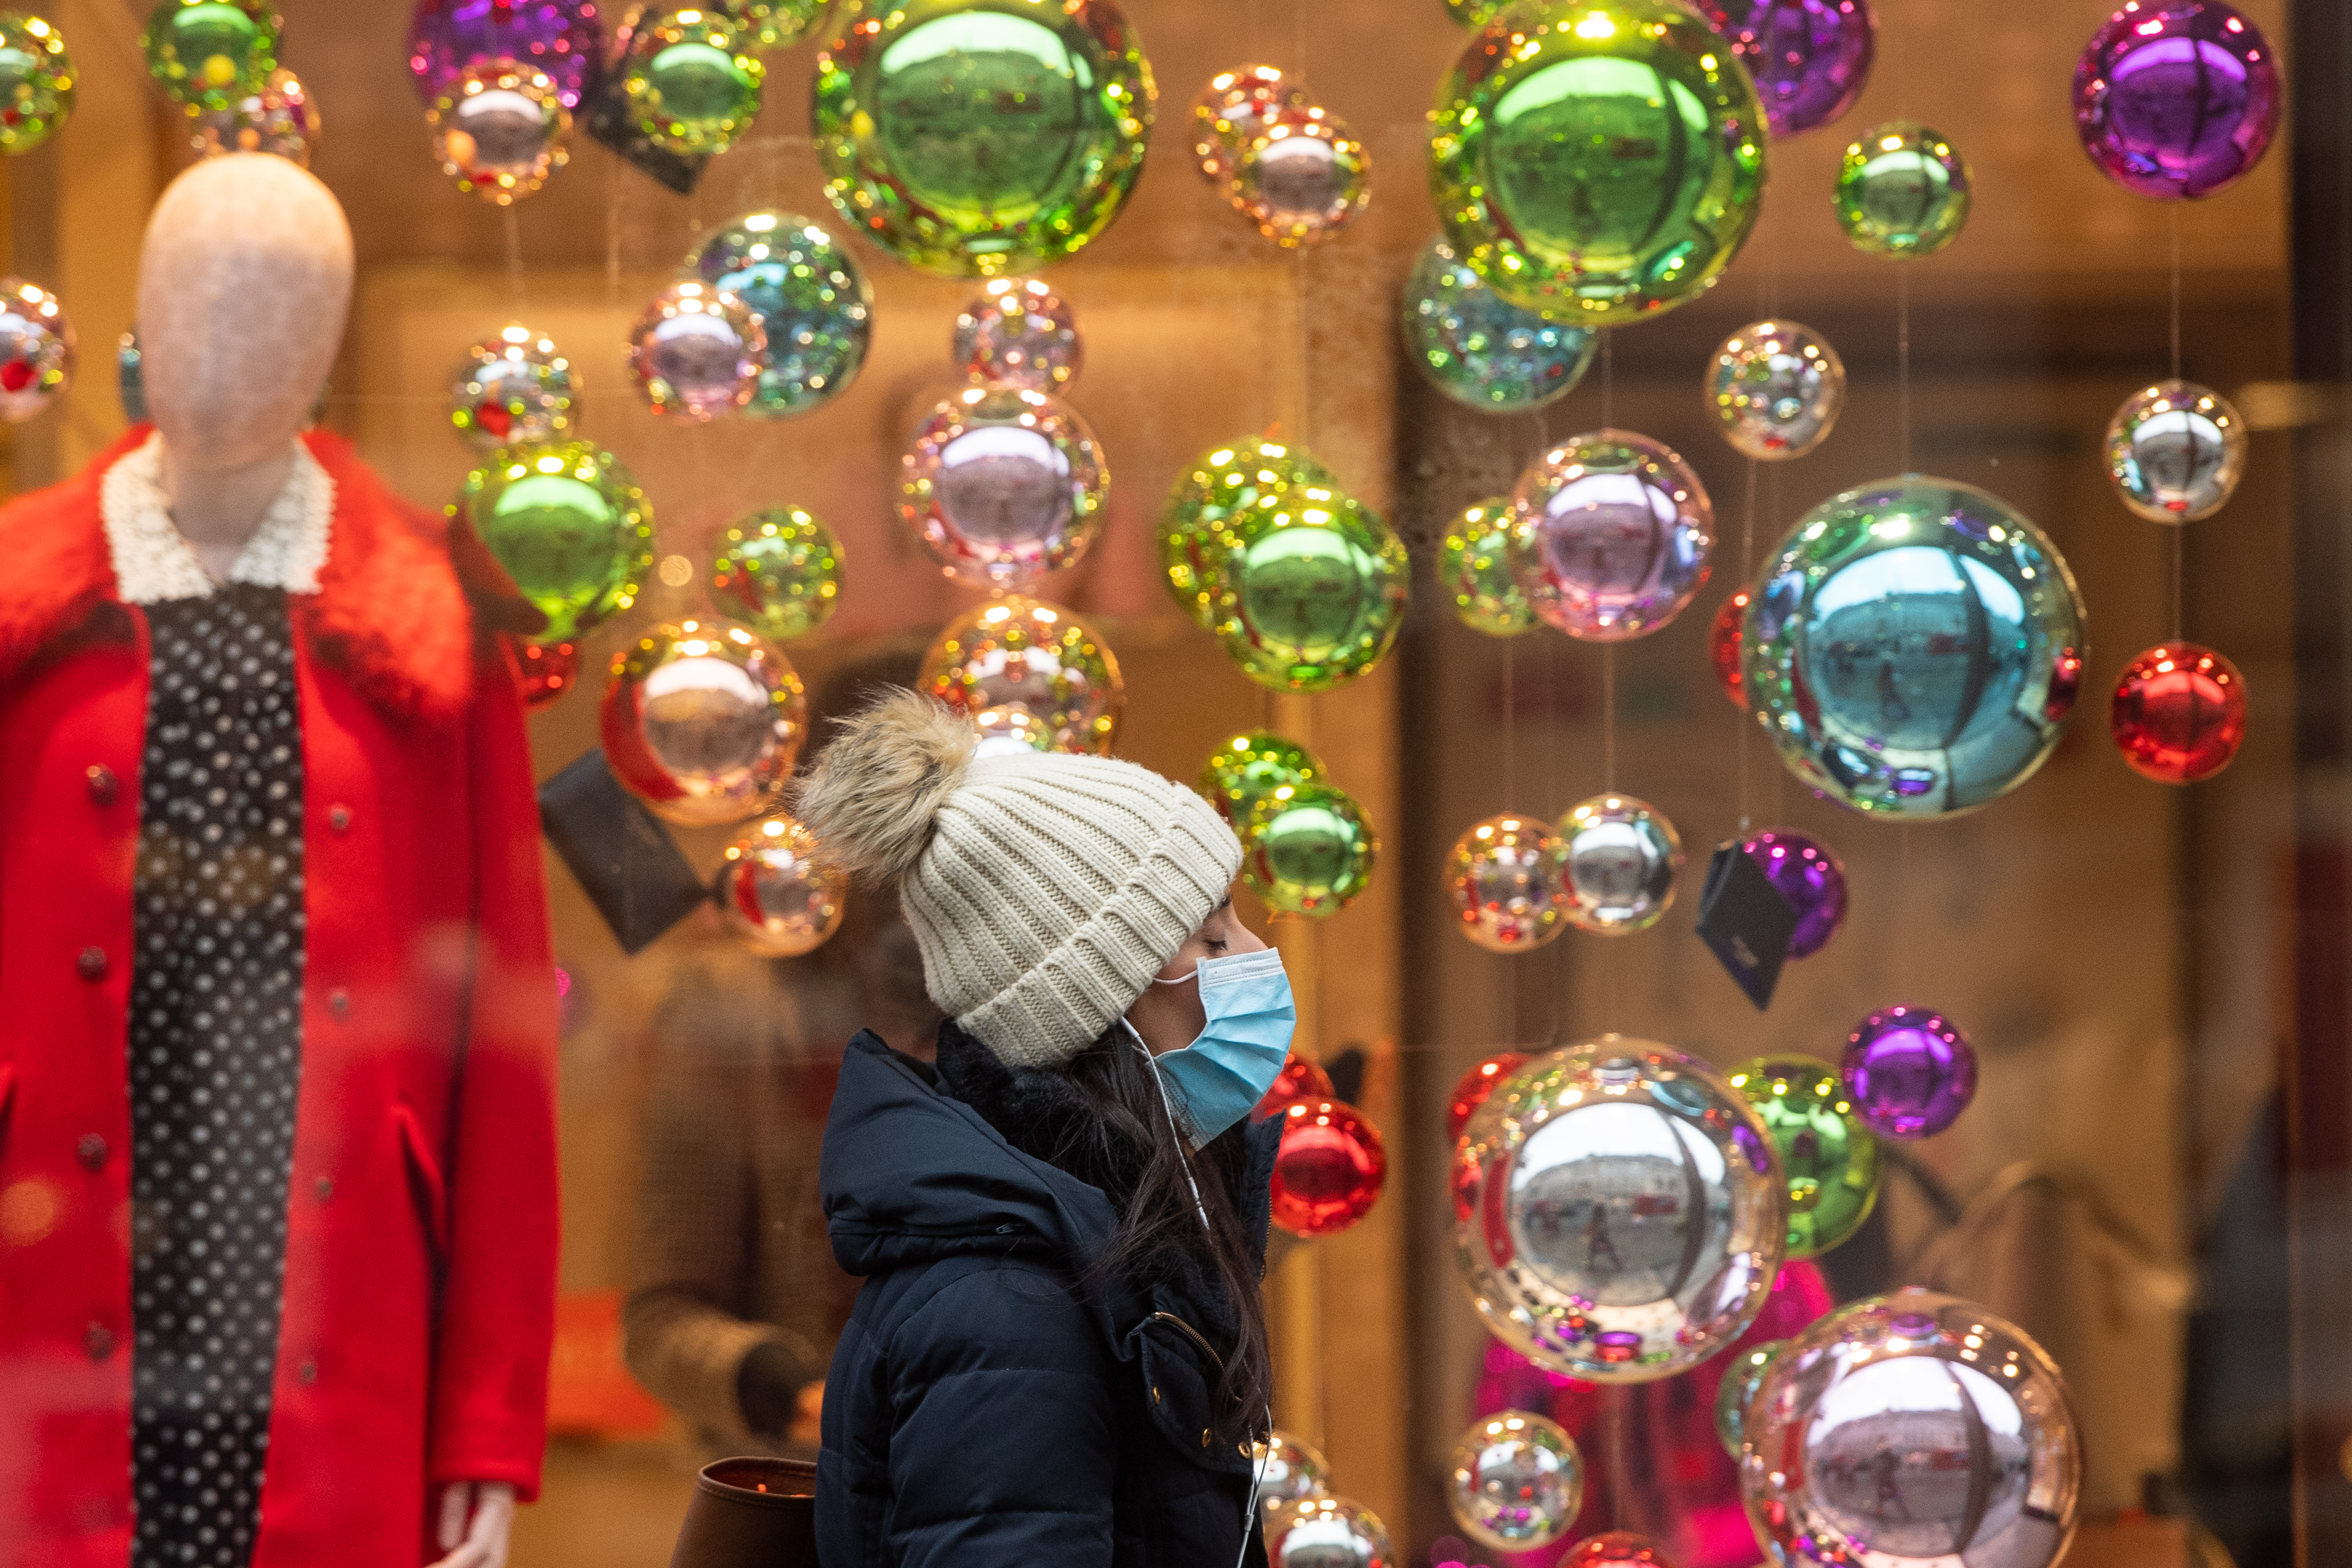 Shoppers on Regent Street in central London. (Photo by Dominic Lipinski/PA Images via Getty Images)